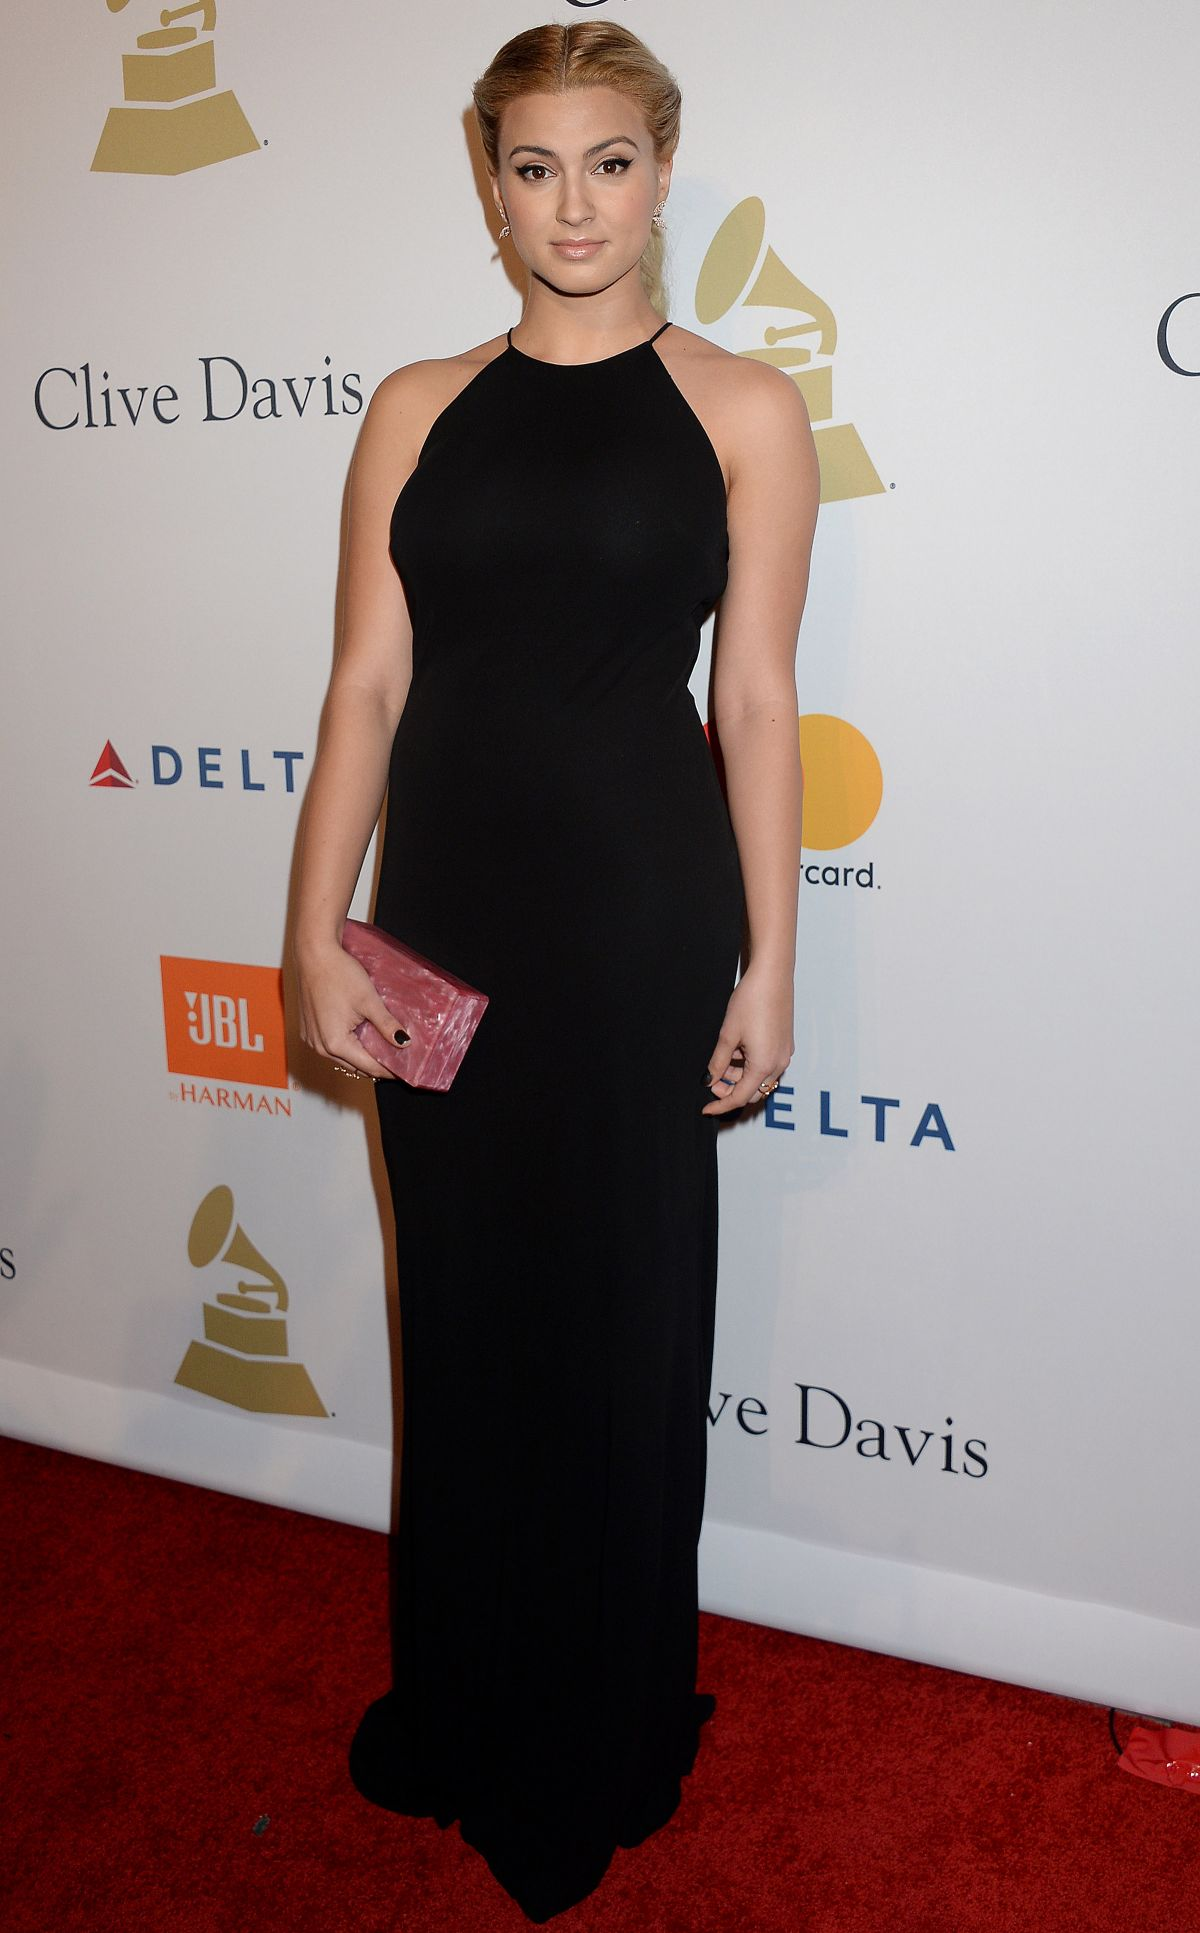 TORRI KELLY at Clive Davis Pre-grammy Party in Los Angeles 02/11/2017